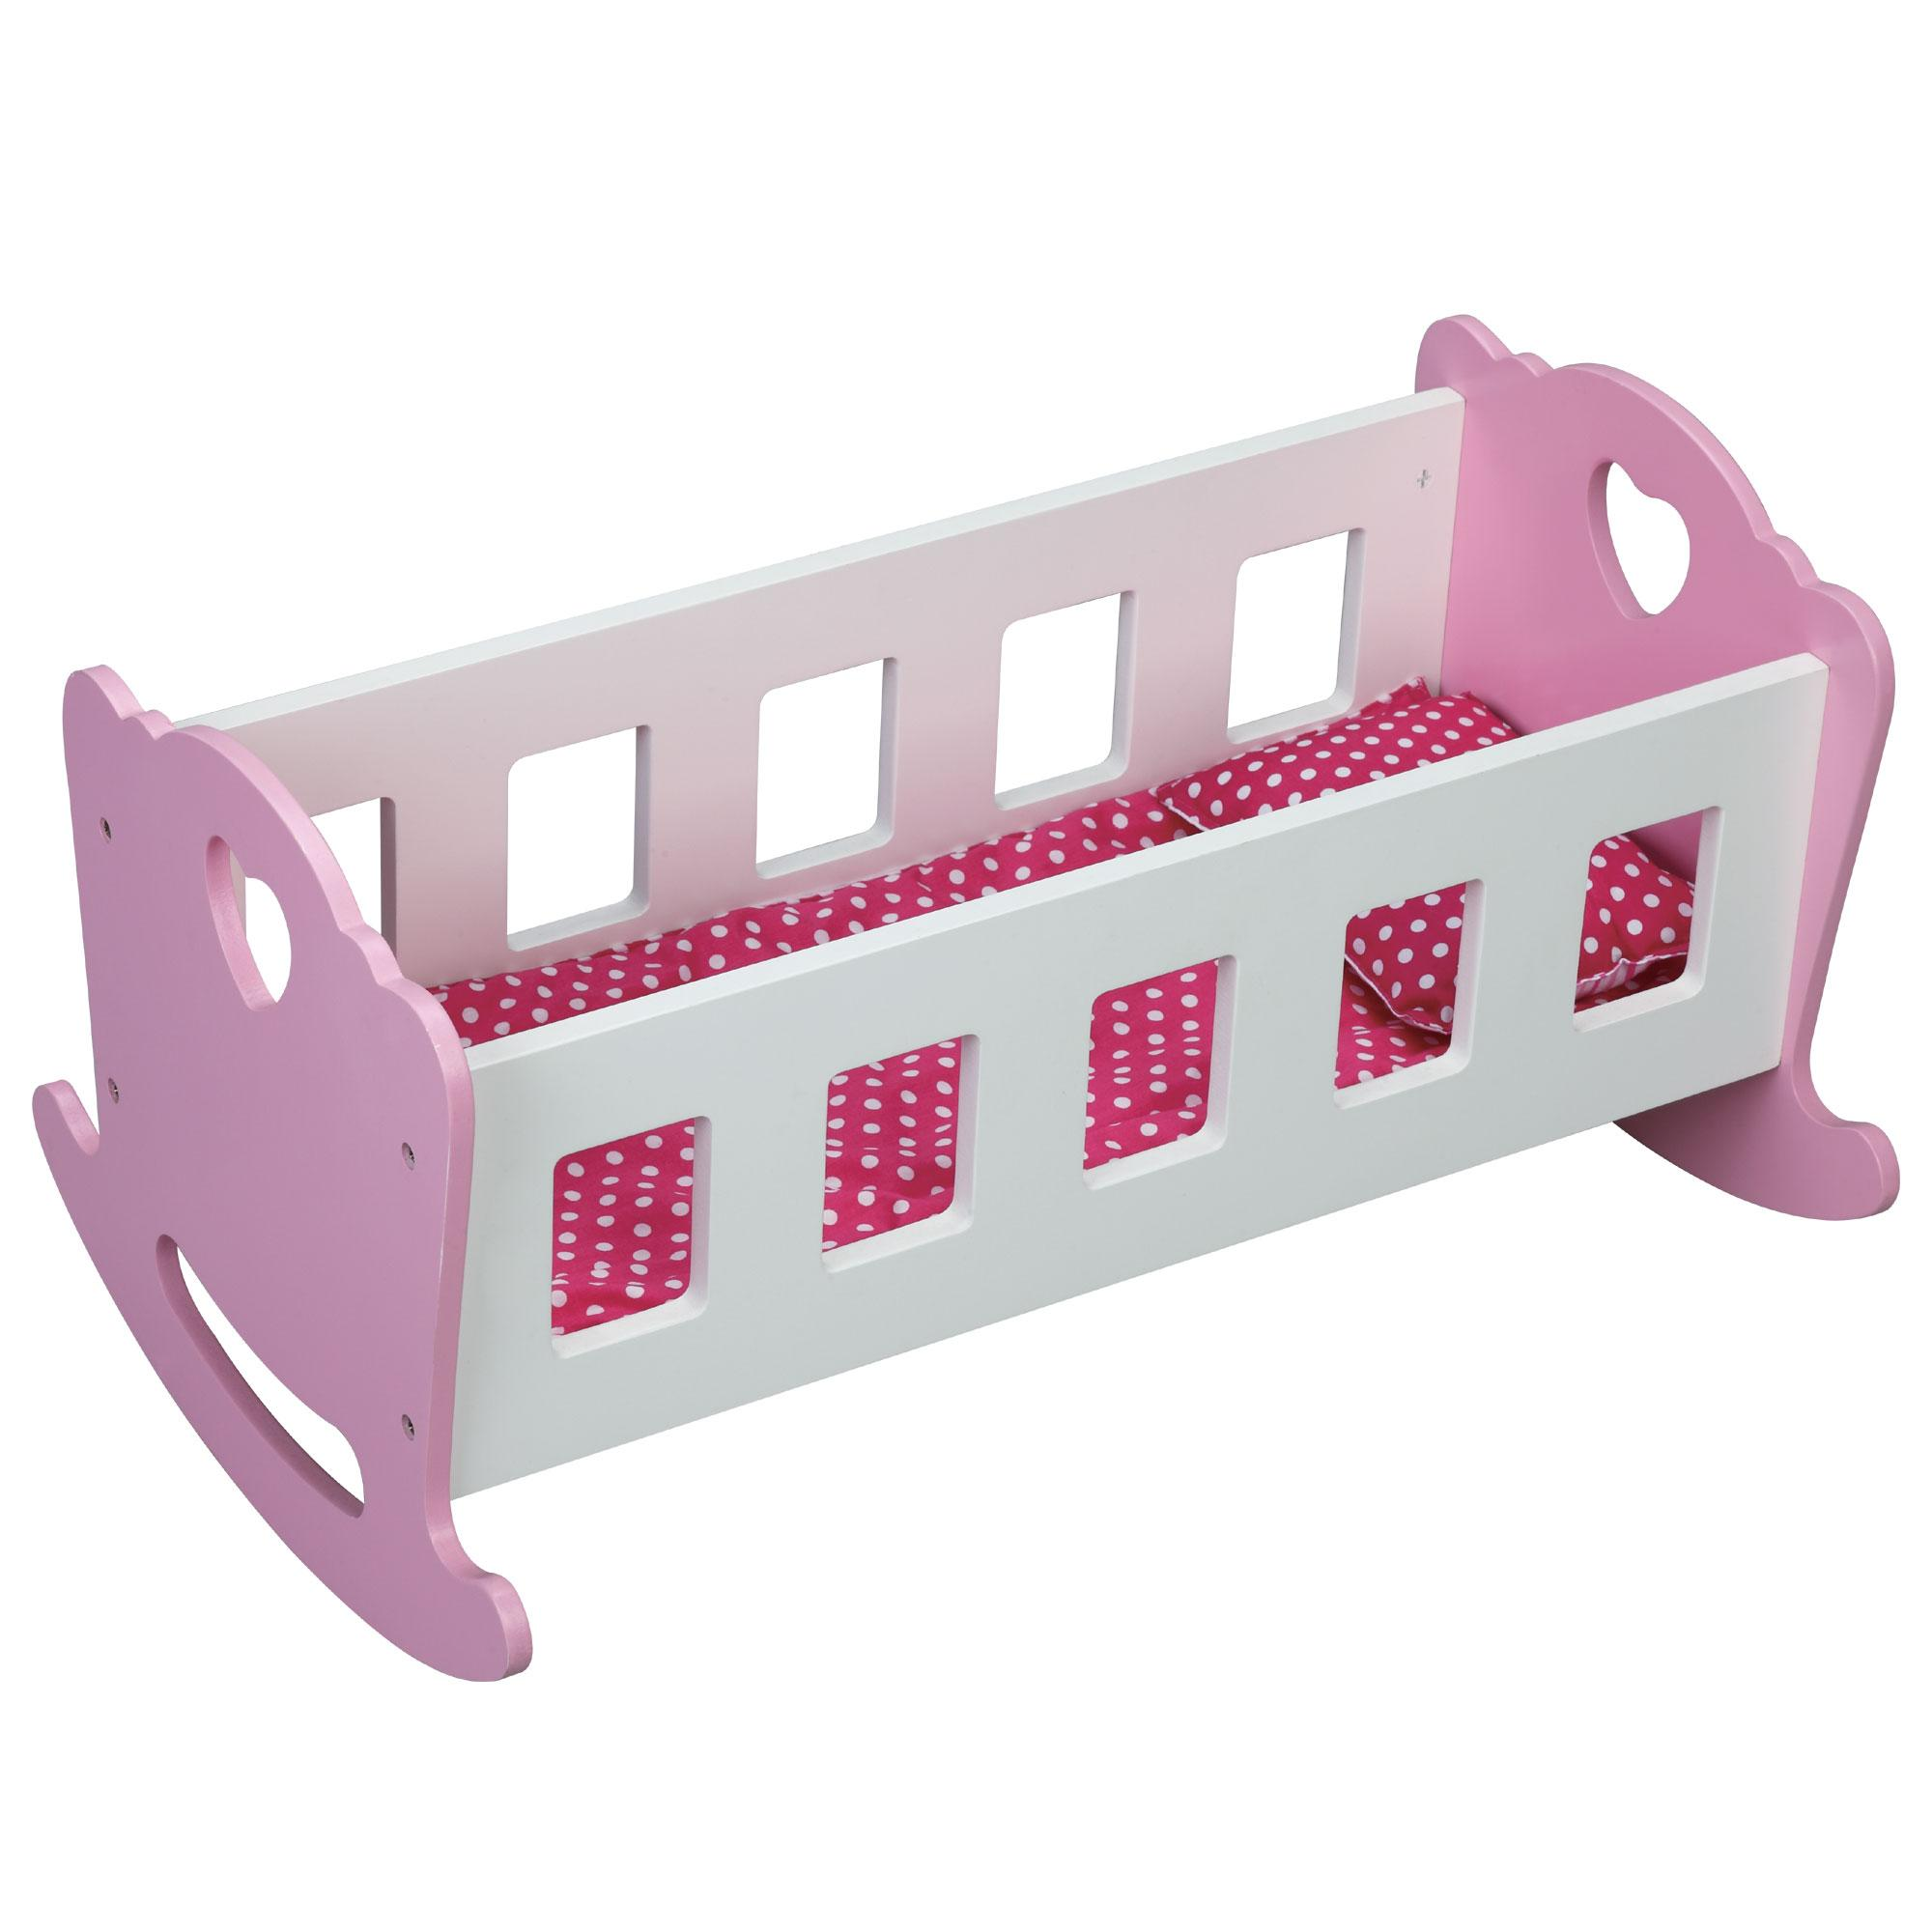 Rocking crib for sale doncaster - Molly Dolly Wooden Dolls Rocking Cradle Crib Wood Rocker Cot Bed Bedding